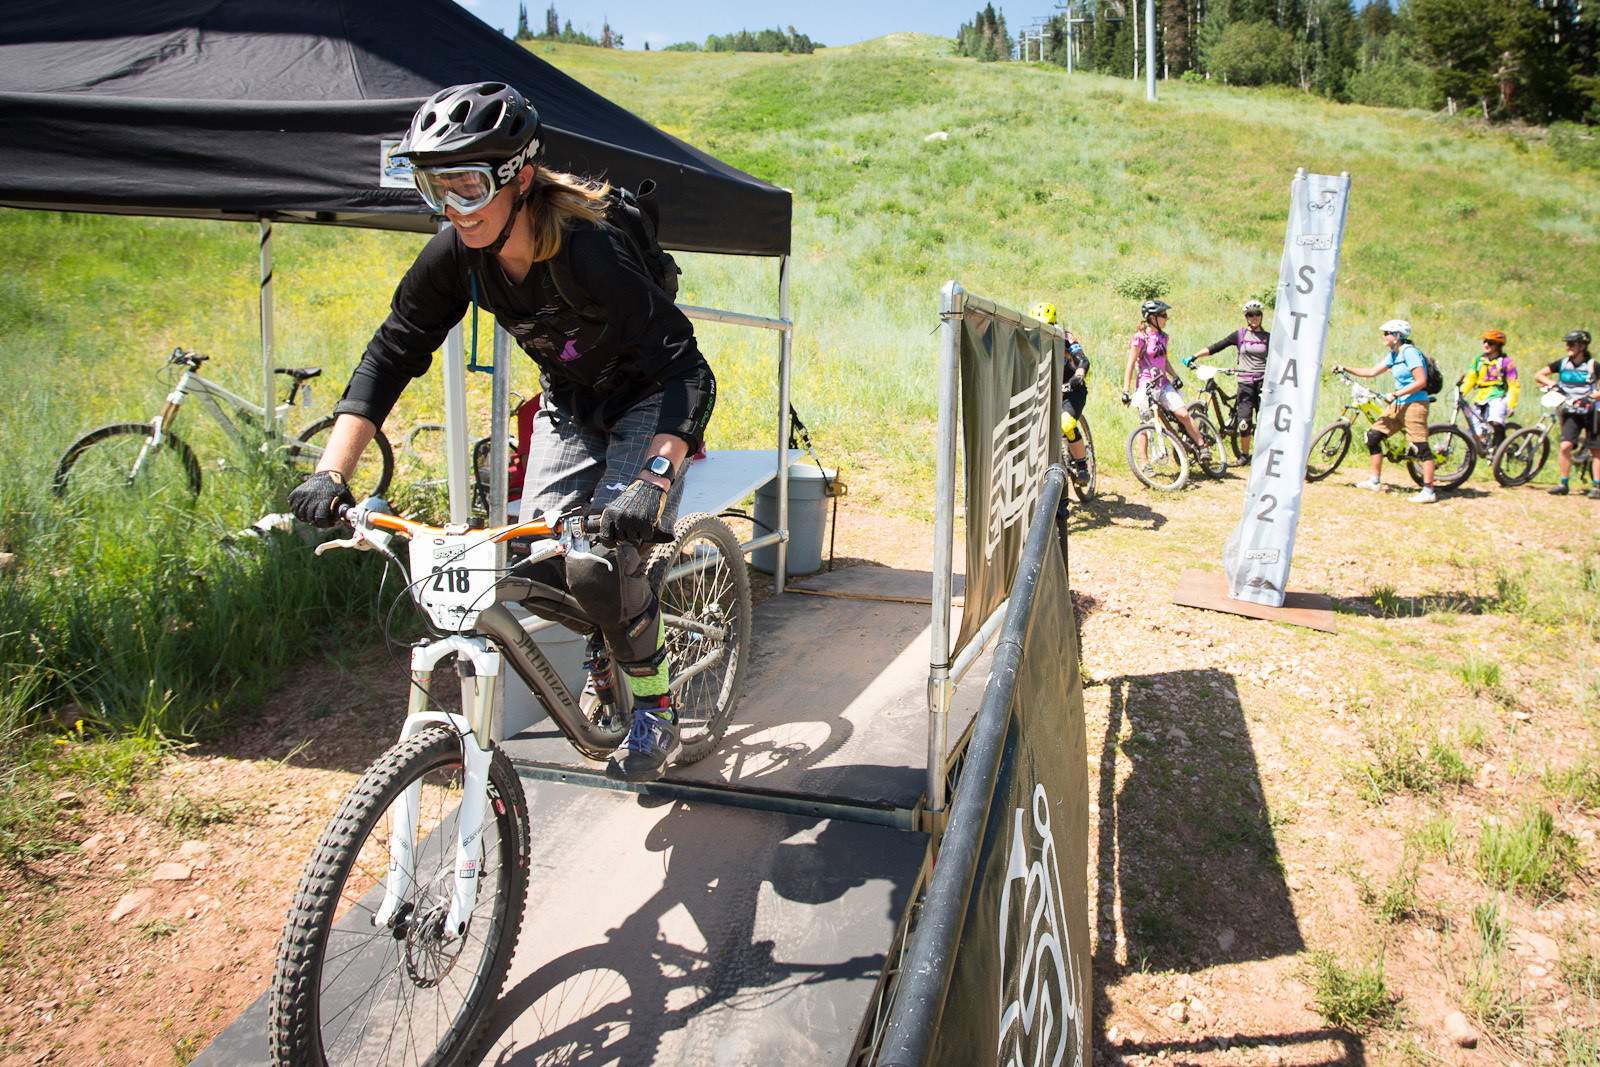 Start Gate, Bell Enduro Cup at Canyons Resort - Race Report, Photos and Video: Bell Enduro Cup at Canyons Resort - Mountain Biking Pictures - Vital MTB